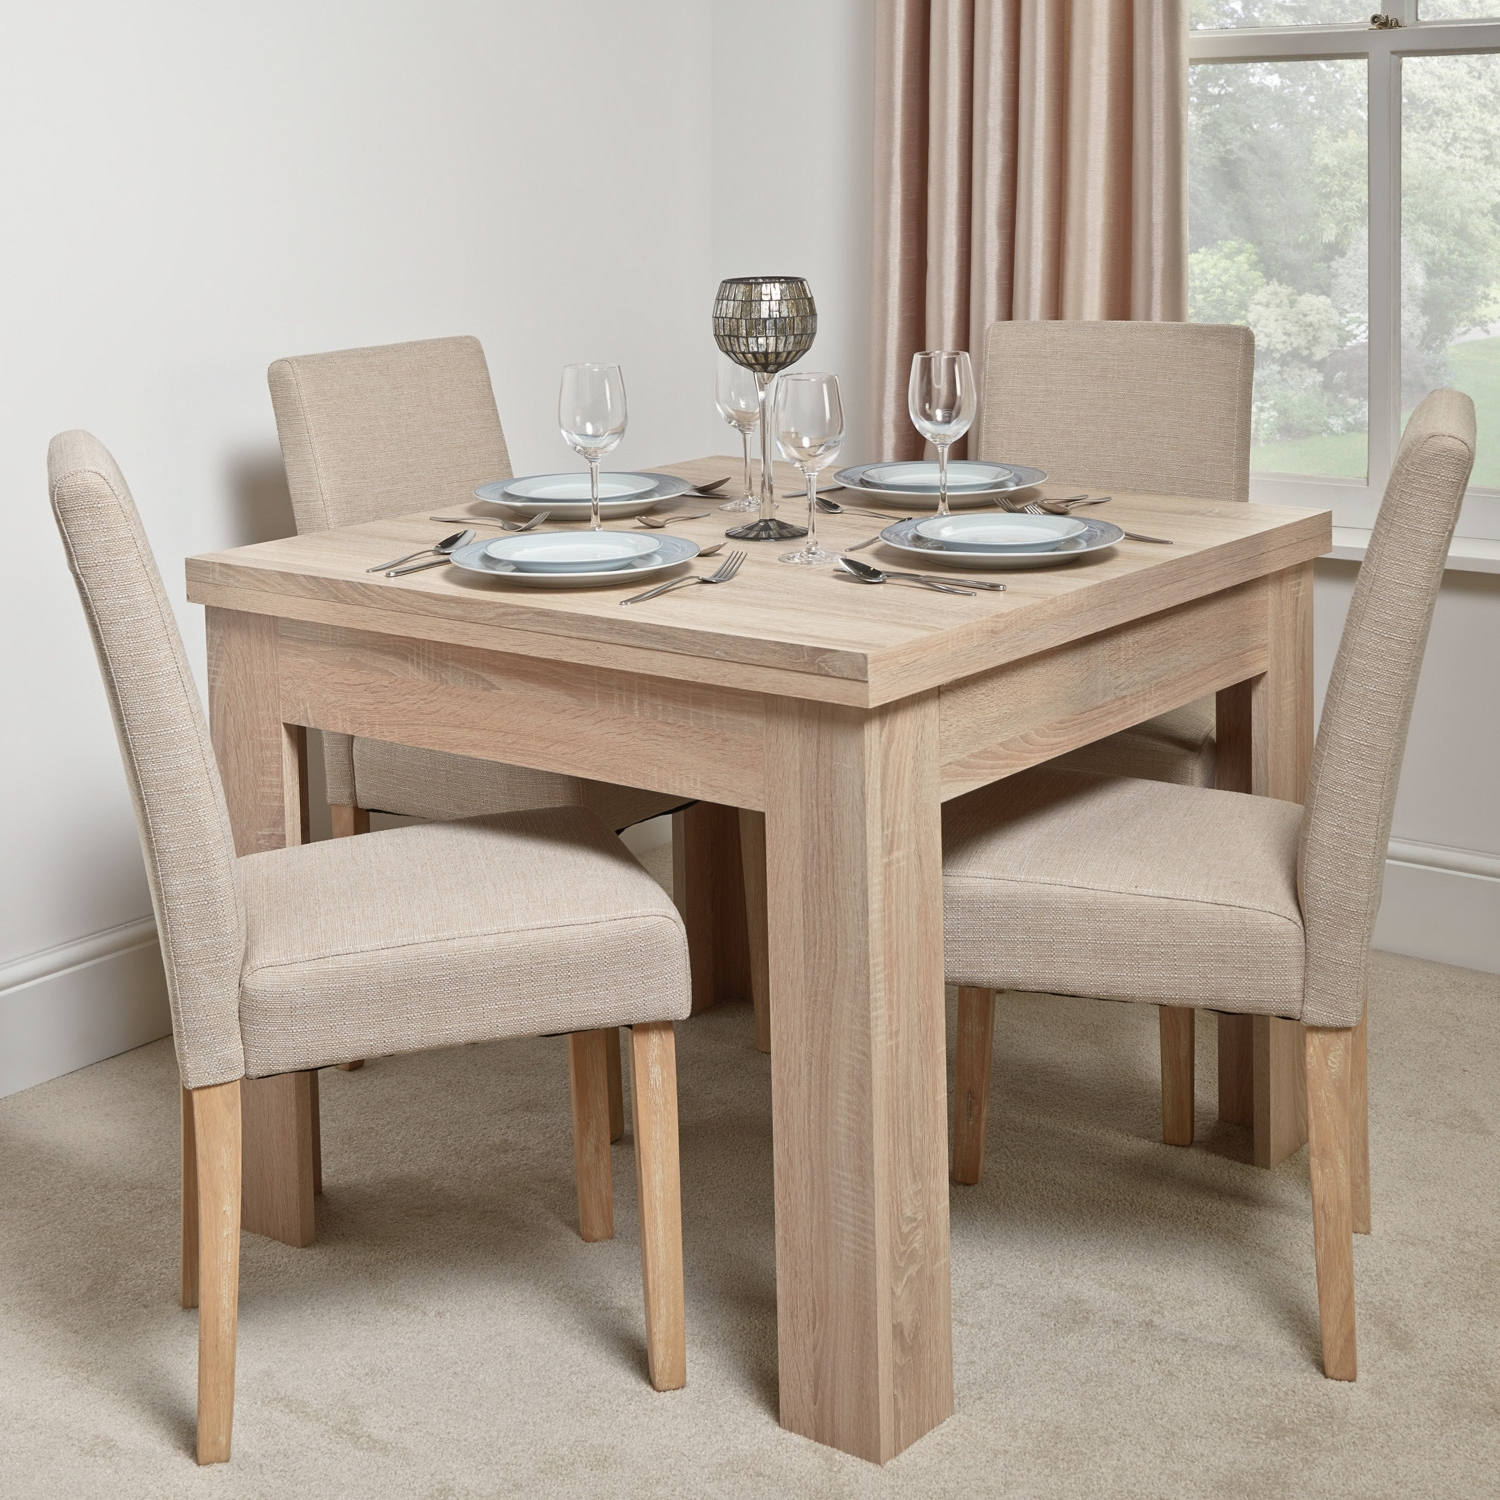 Extendable Dining Tables Within Most Up To Date Calpe Flip Extending Dining Table (View 4 of 25)